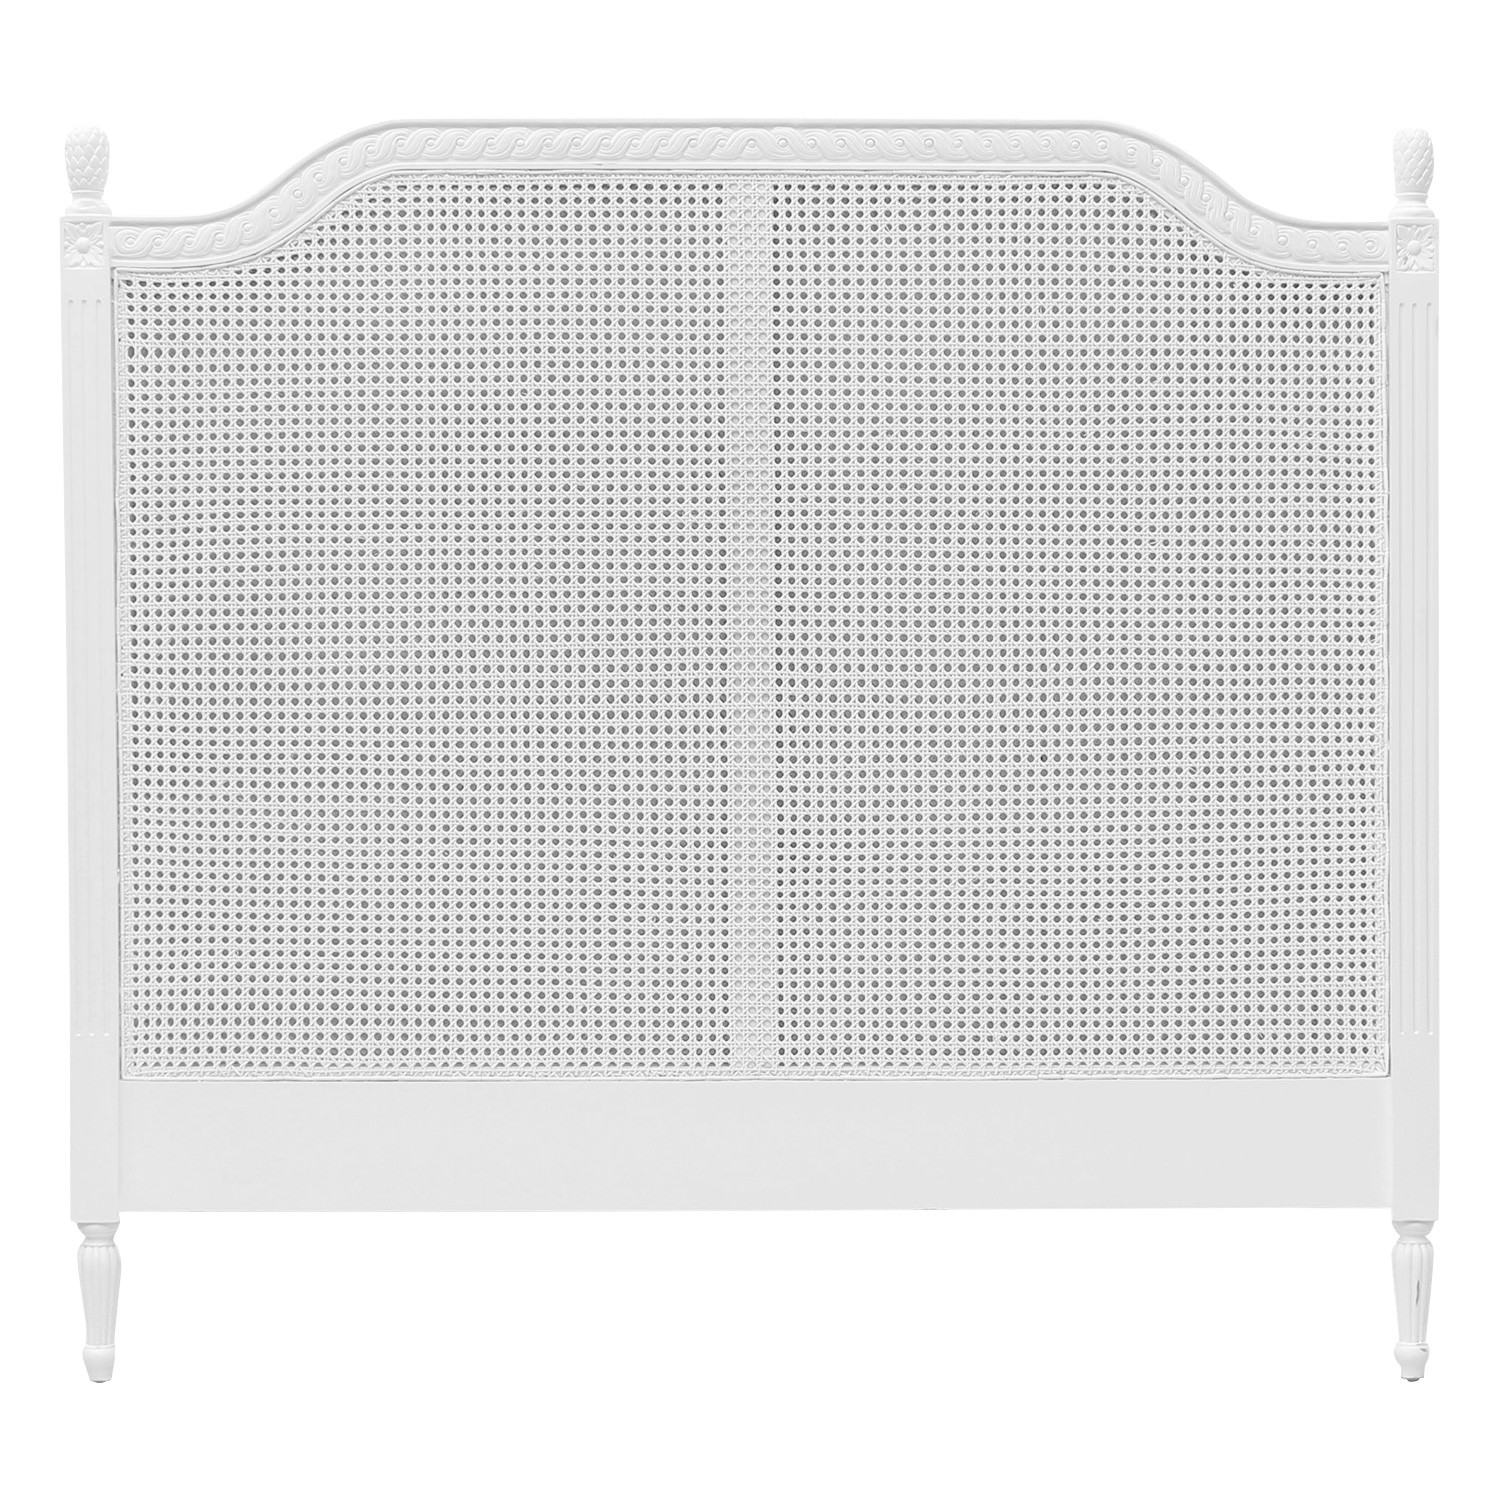 Lapalisse Hand Crafted Mahogany Timber & Rattan Bed Headboard, Queen, White